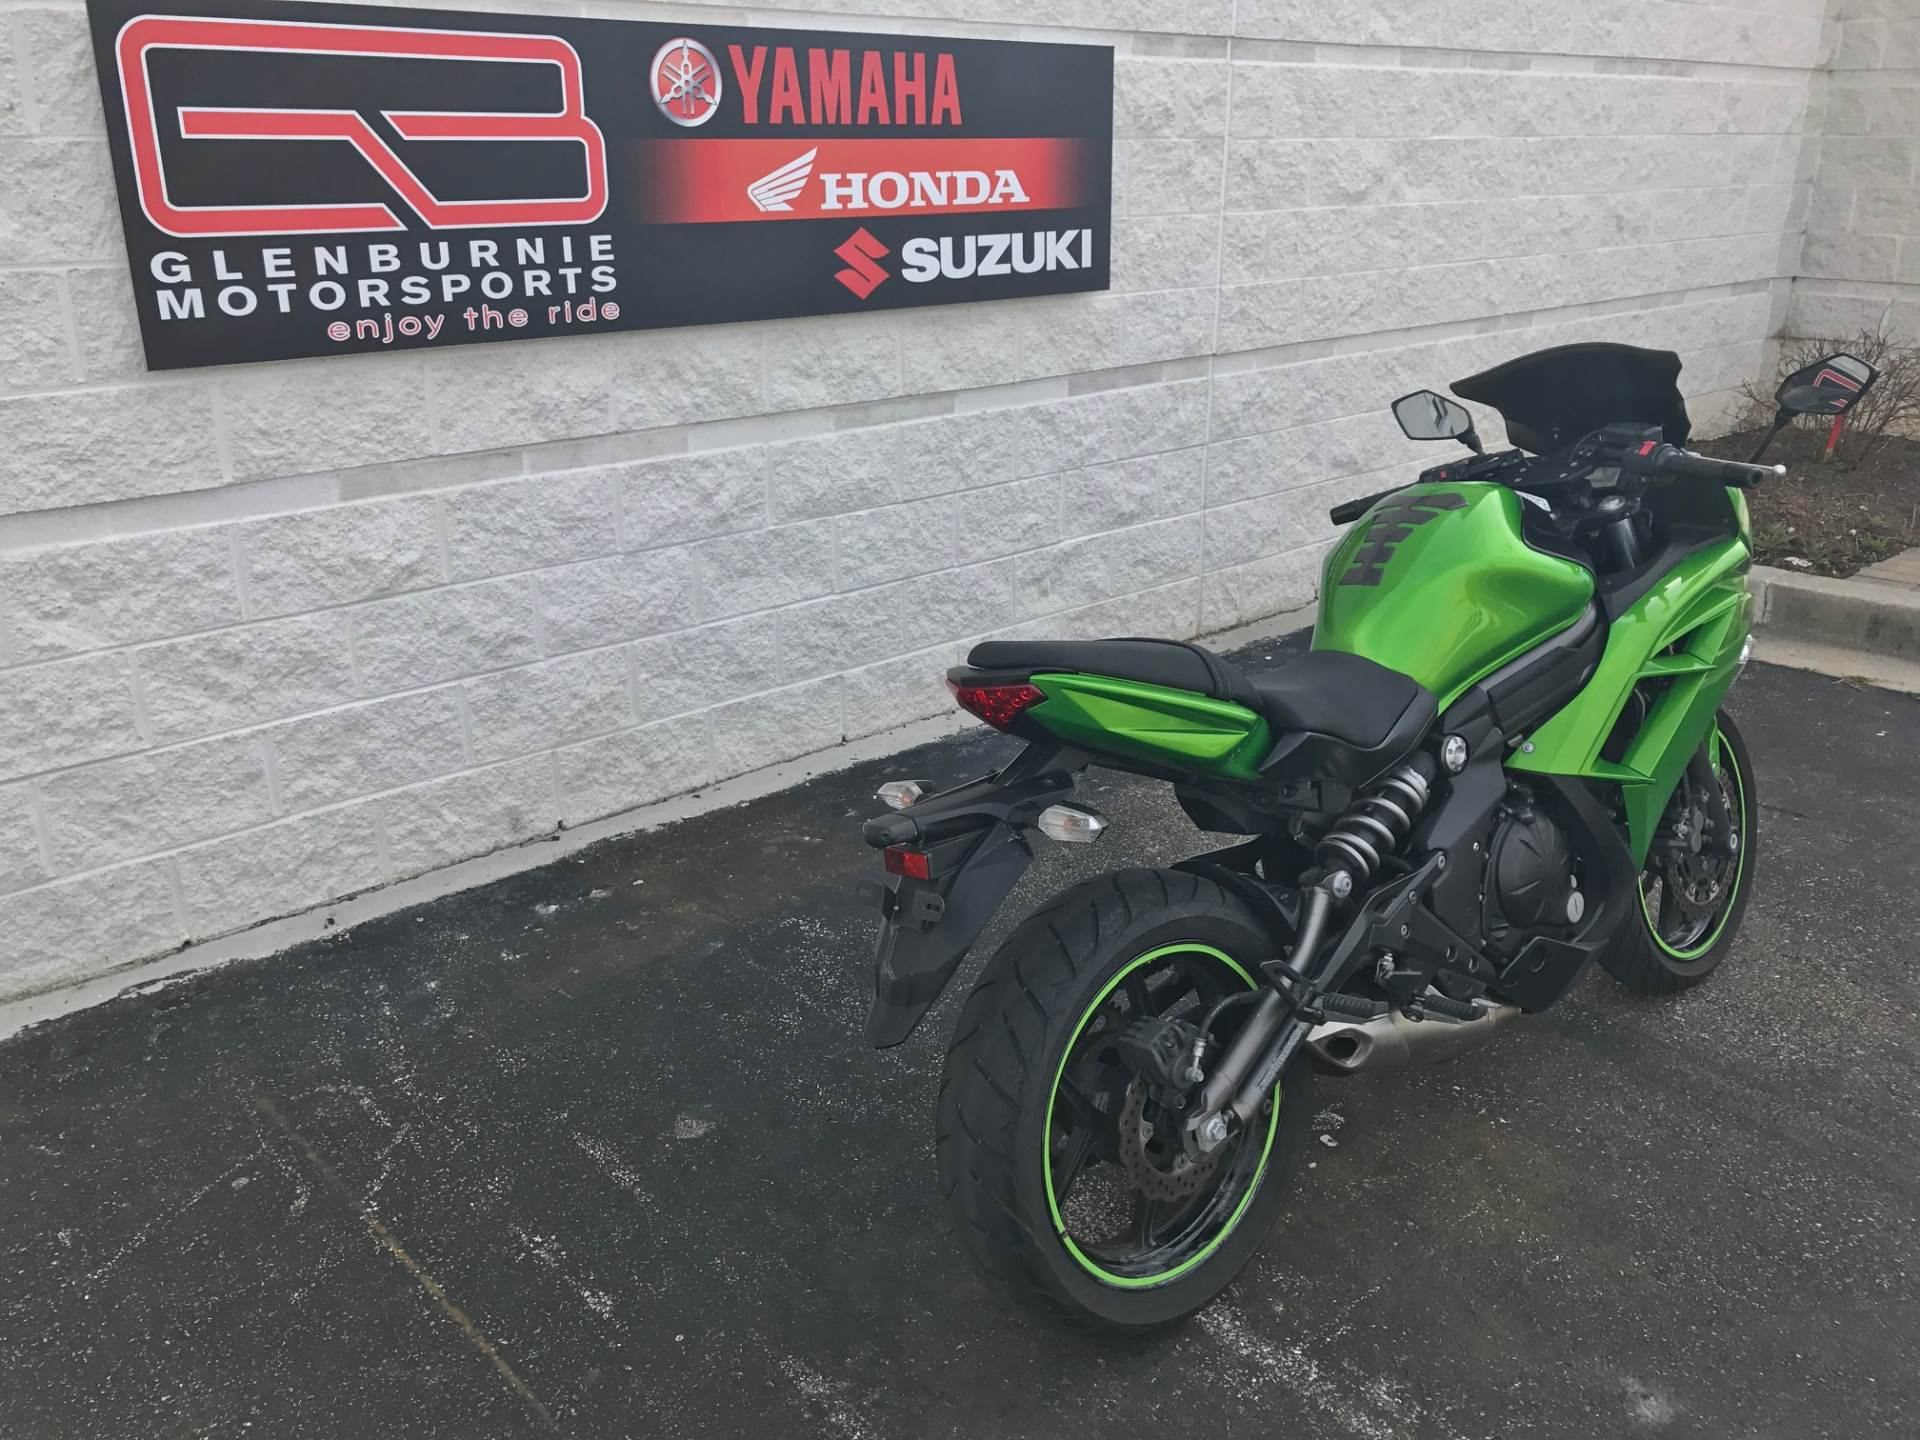 2012 Kawasaki Ninja® 650 in Glen Burnie, Maryland